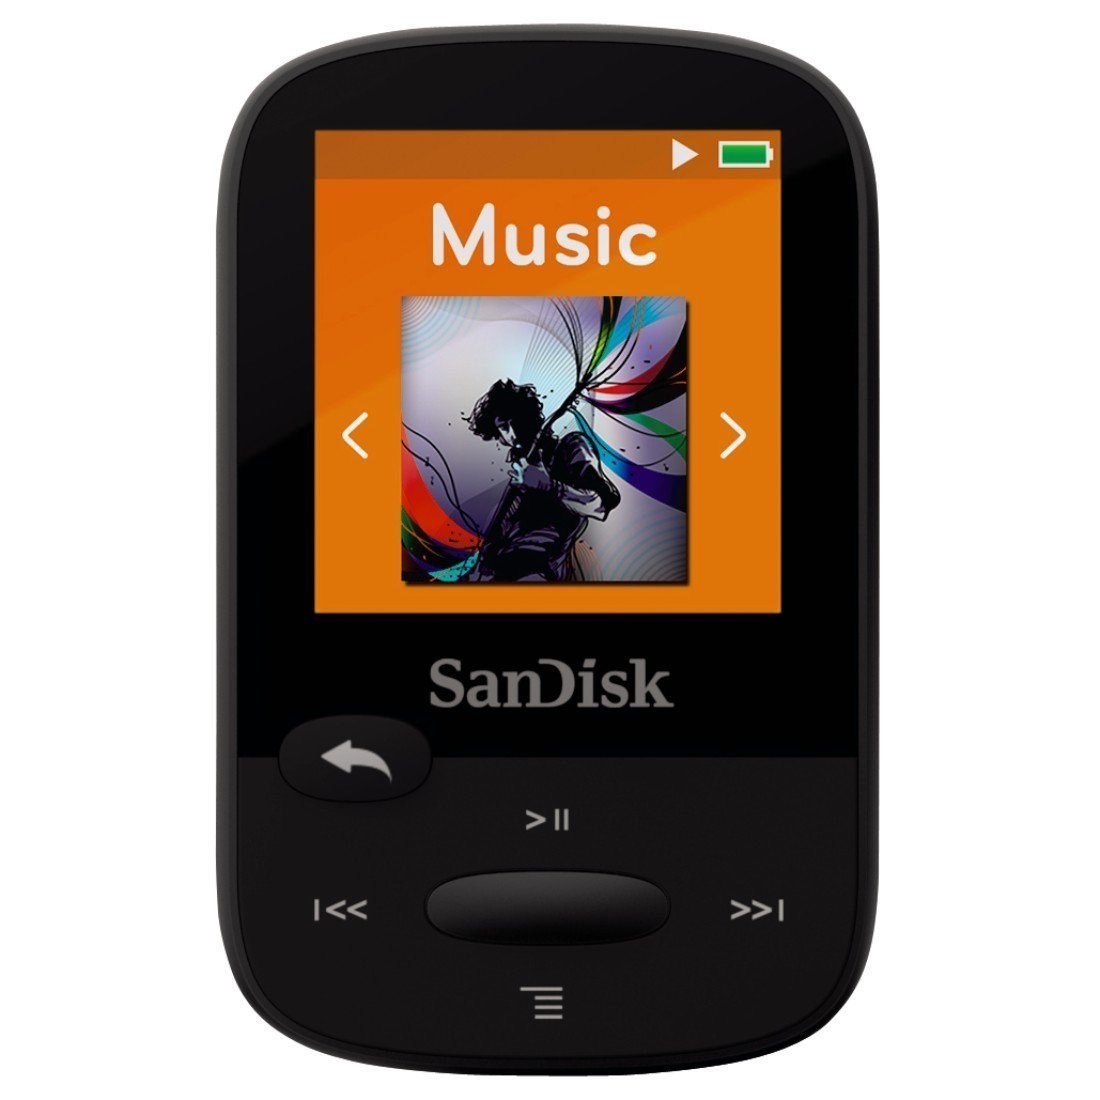 SanDisk Clip Sport 4GB MP3 Player, Black With LCD Screen and MicroSDHC Card Slot (Certified Refurbished)